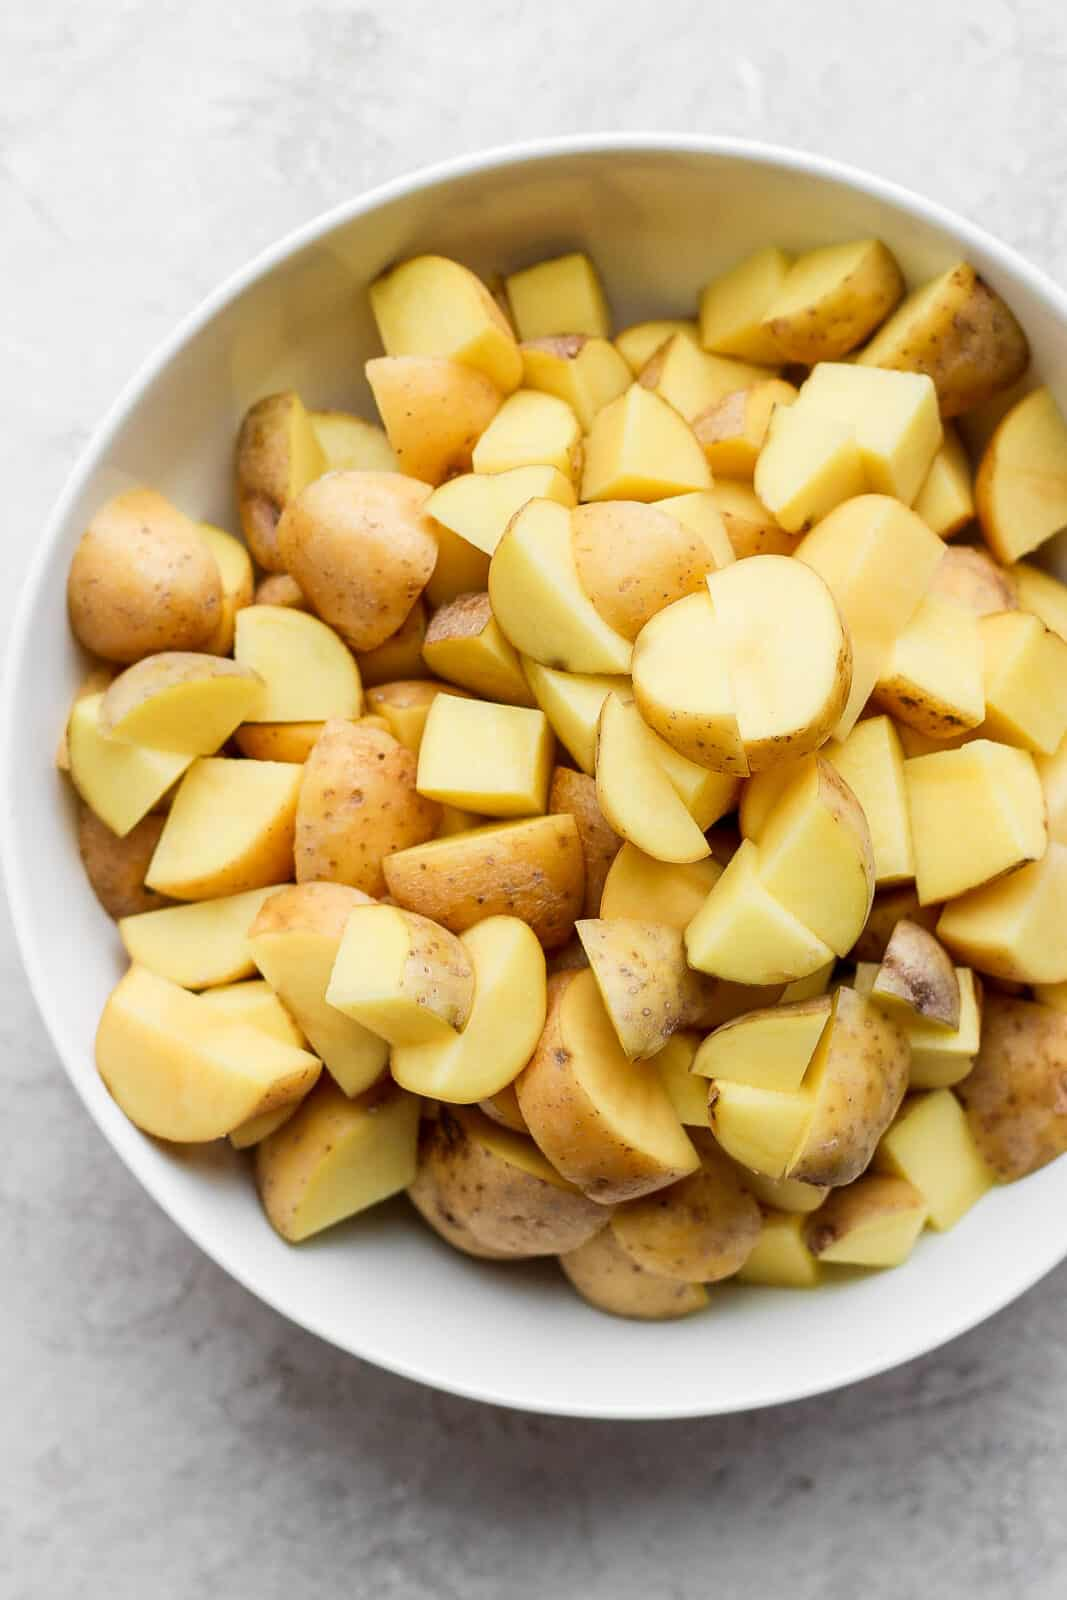 Cut up potatoes in a bowl.